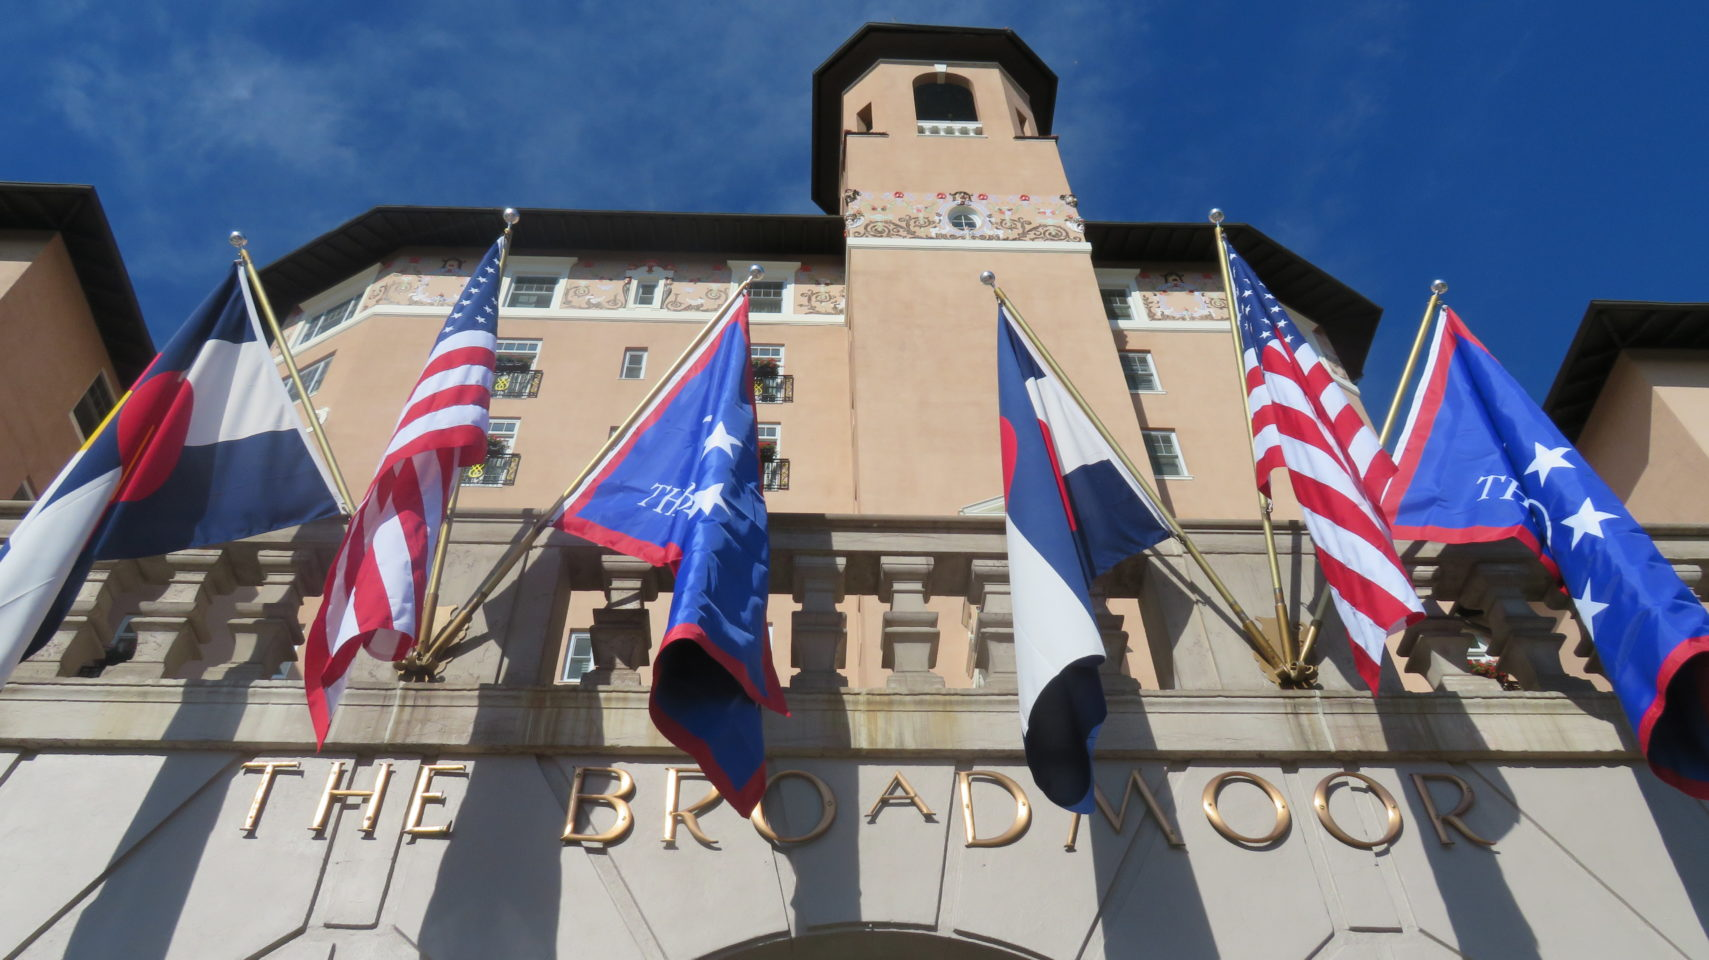 The Broadmoor ~ One of the Finest Resorts in the World